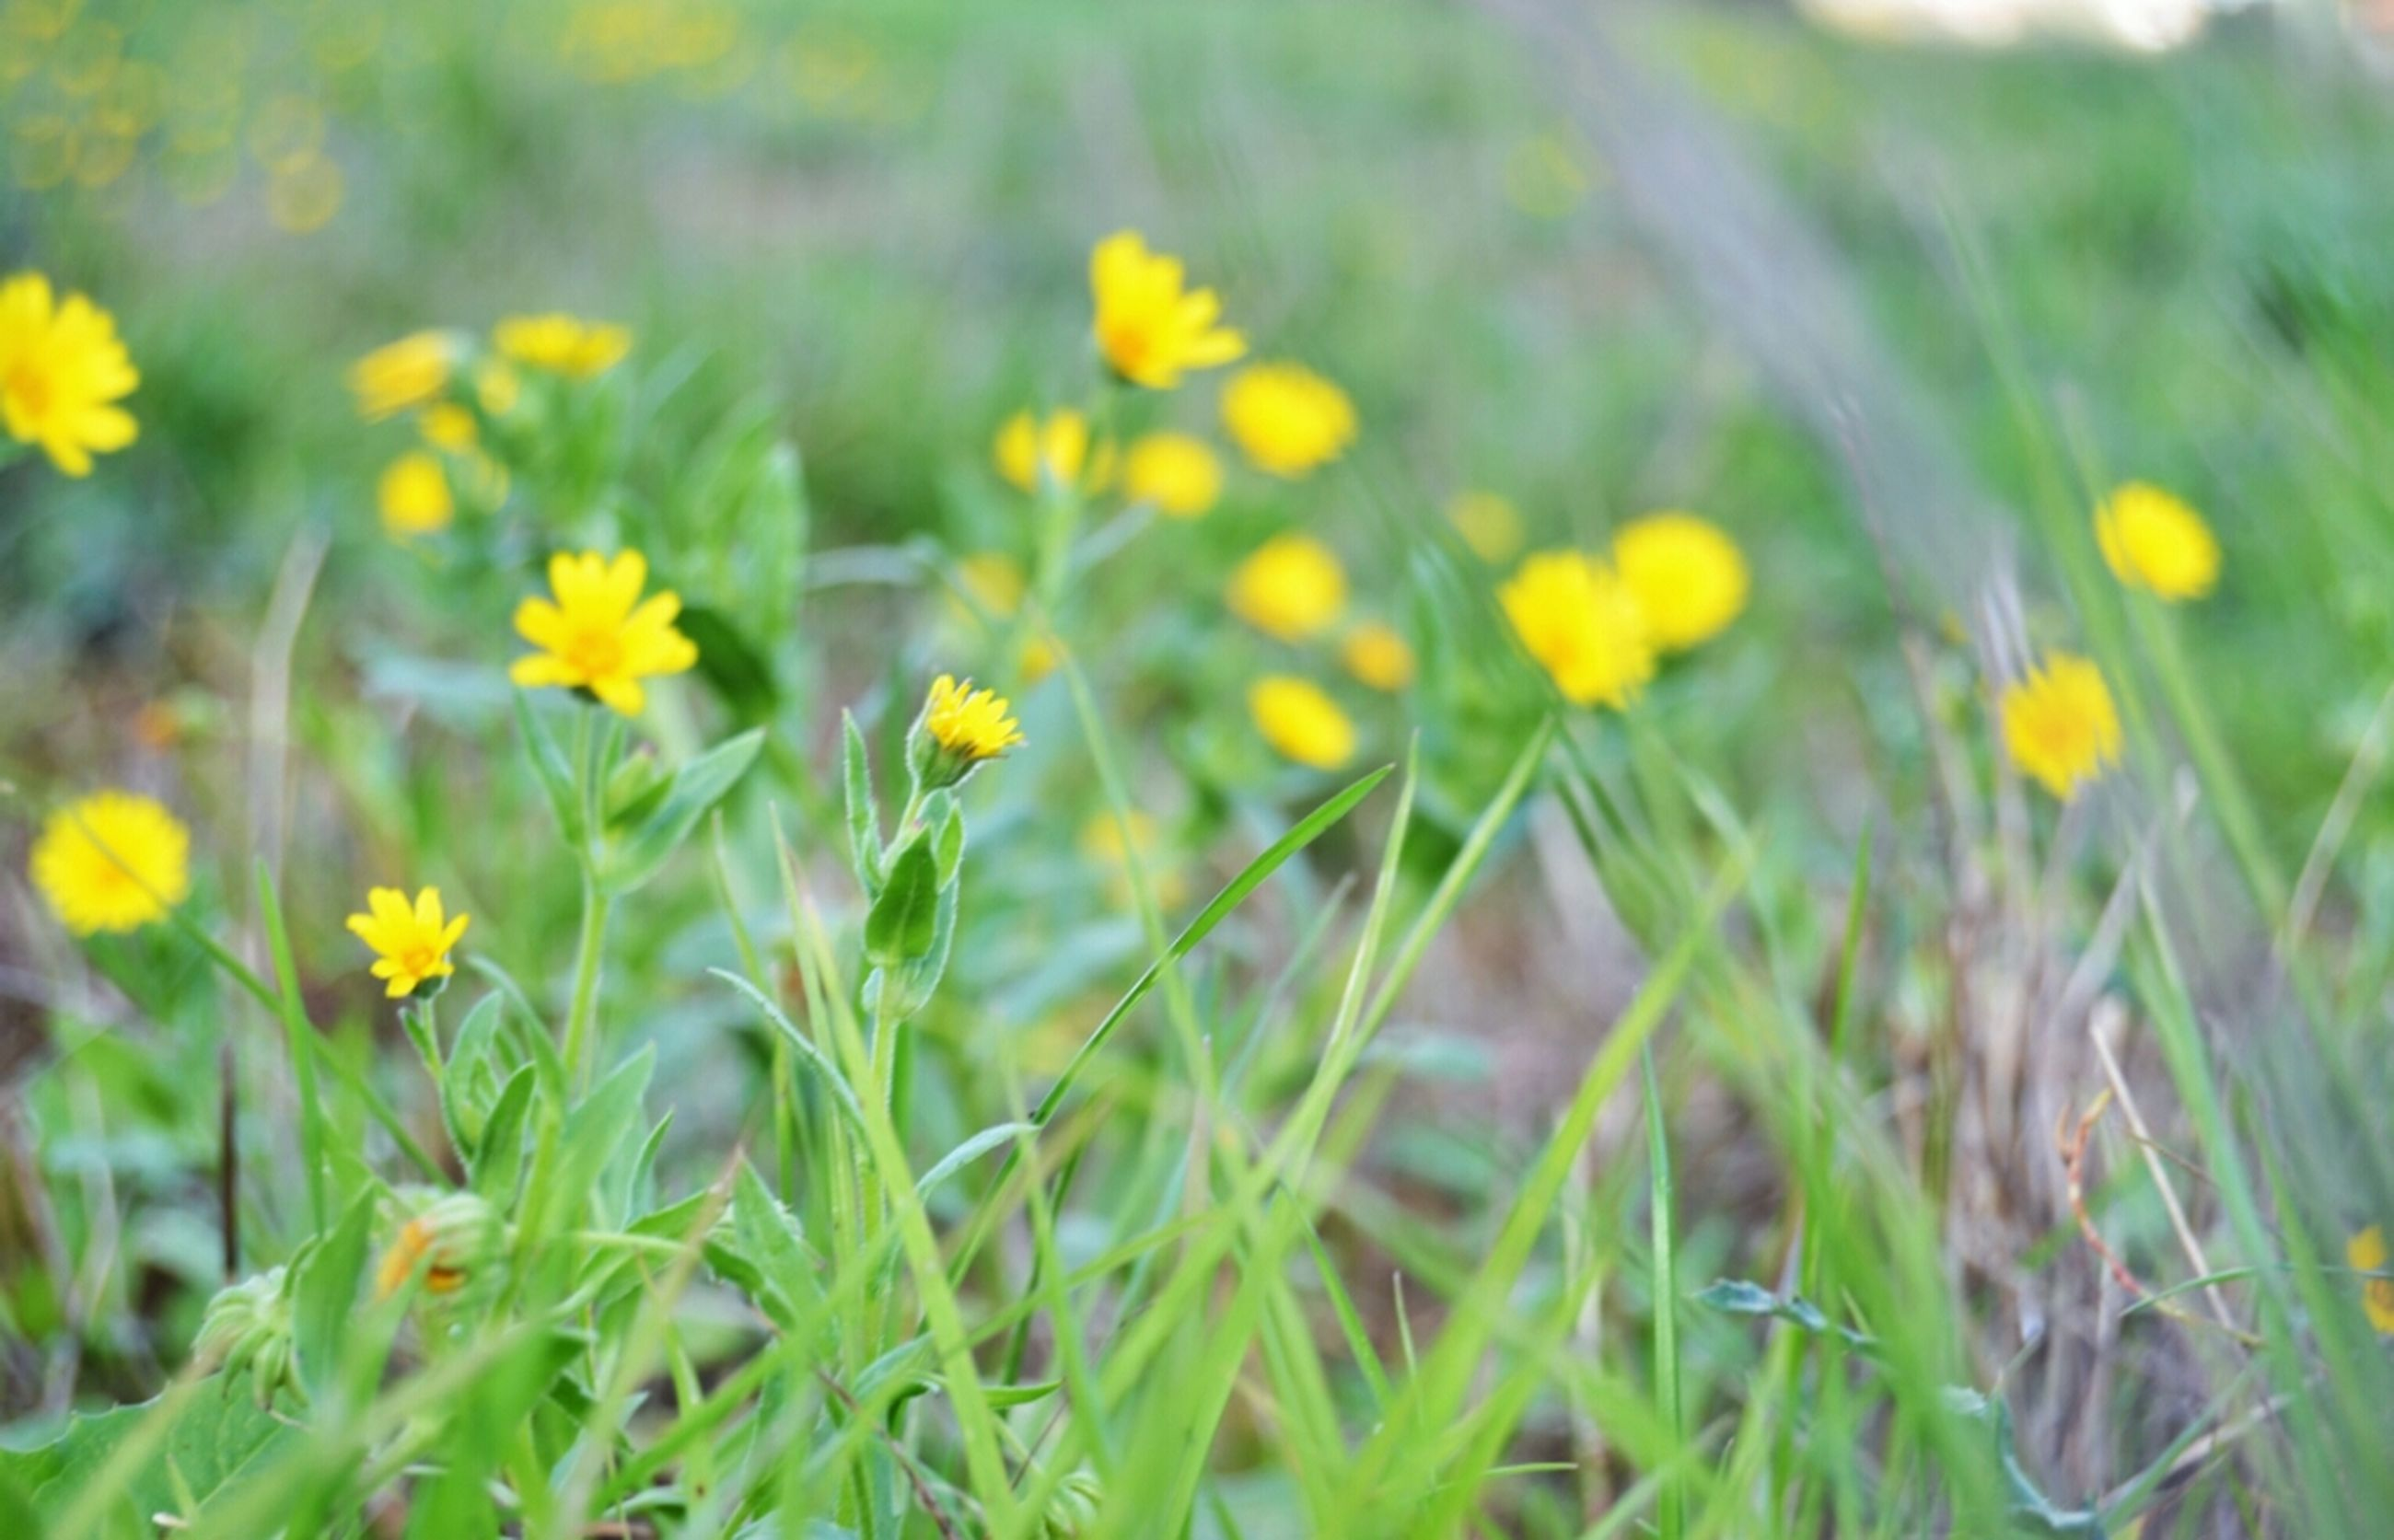 flower, freshness, growth, yellow, fragility, petal, beauty in nature, field, blooming, flower head, nature, plant, focus on foreground, close-up, in bloom, grass, selective focus, green color, wildflower, stem